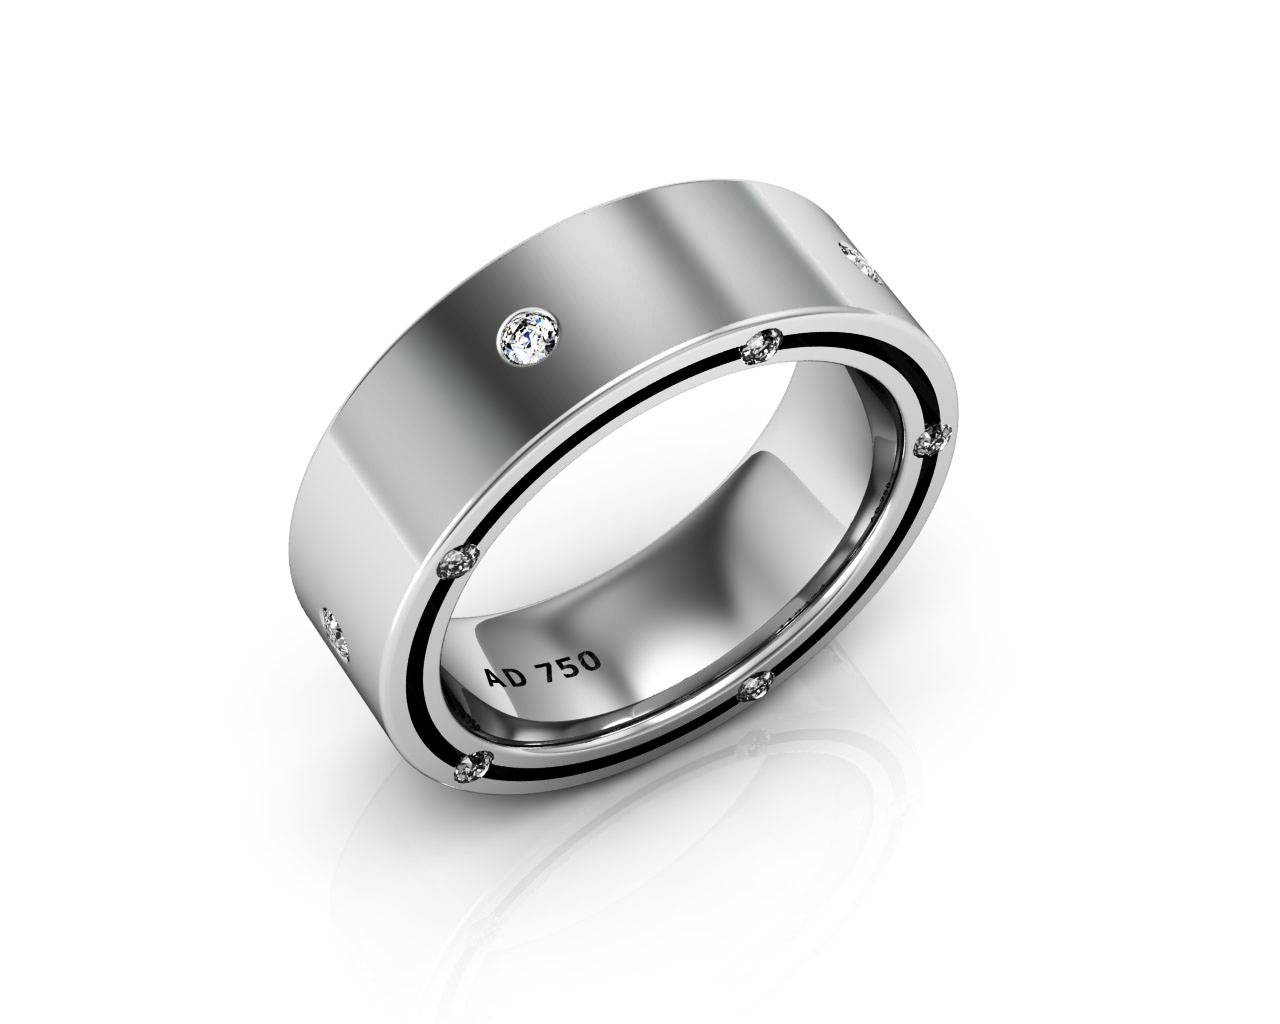 Stone Diamond White Gold Men's Wedding Bands Regarding Most Popular Men White Gold Wedding Band (View 7 of 15)